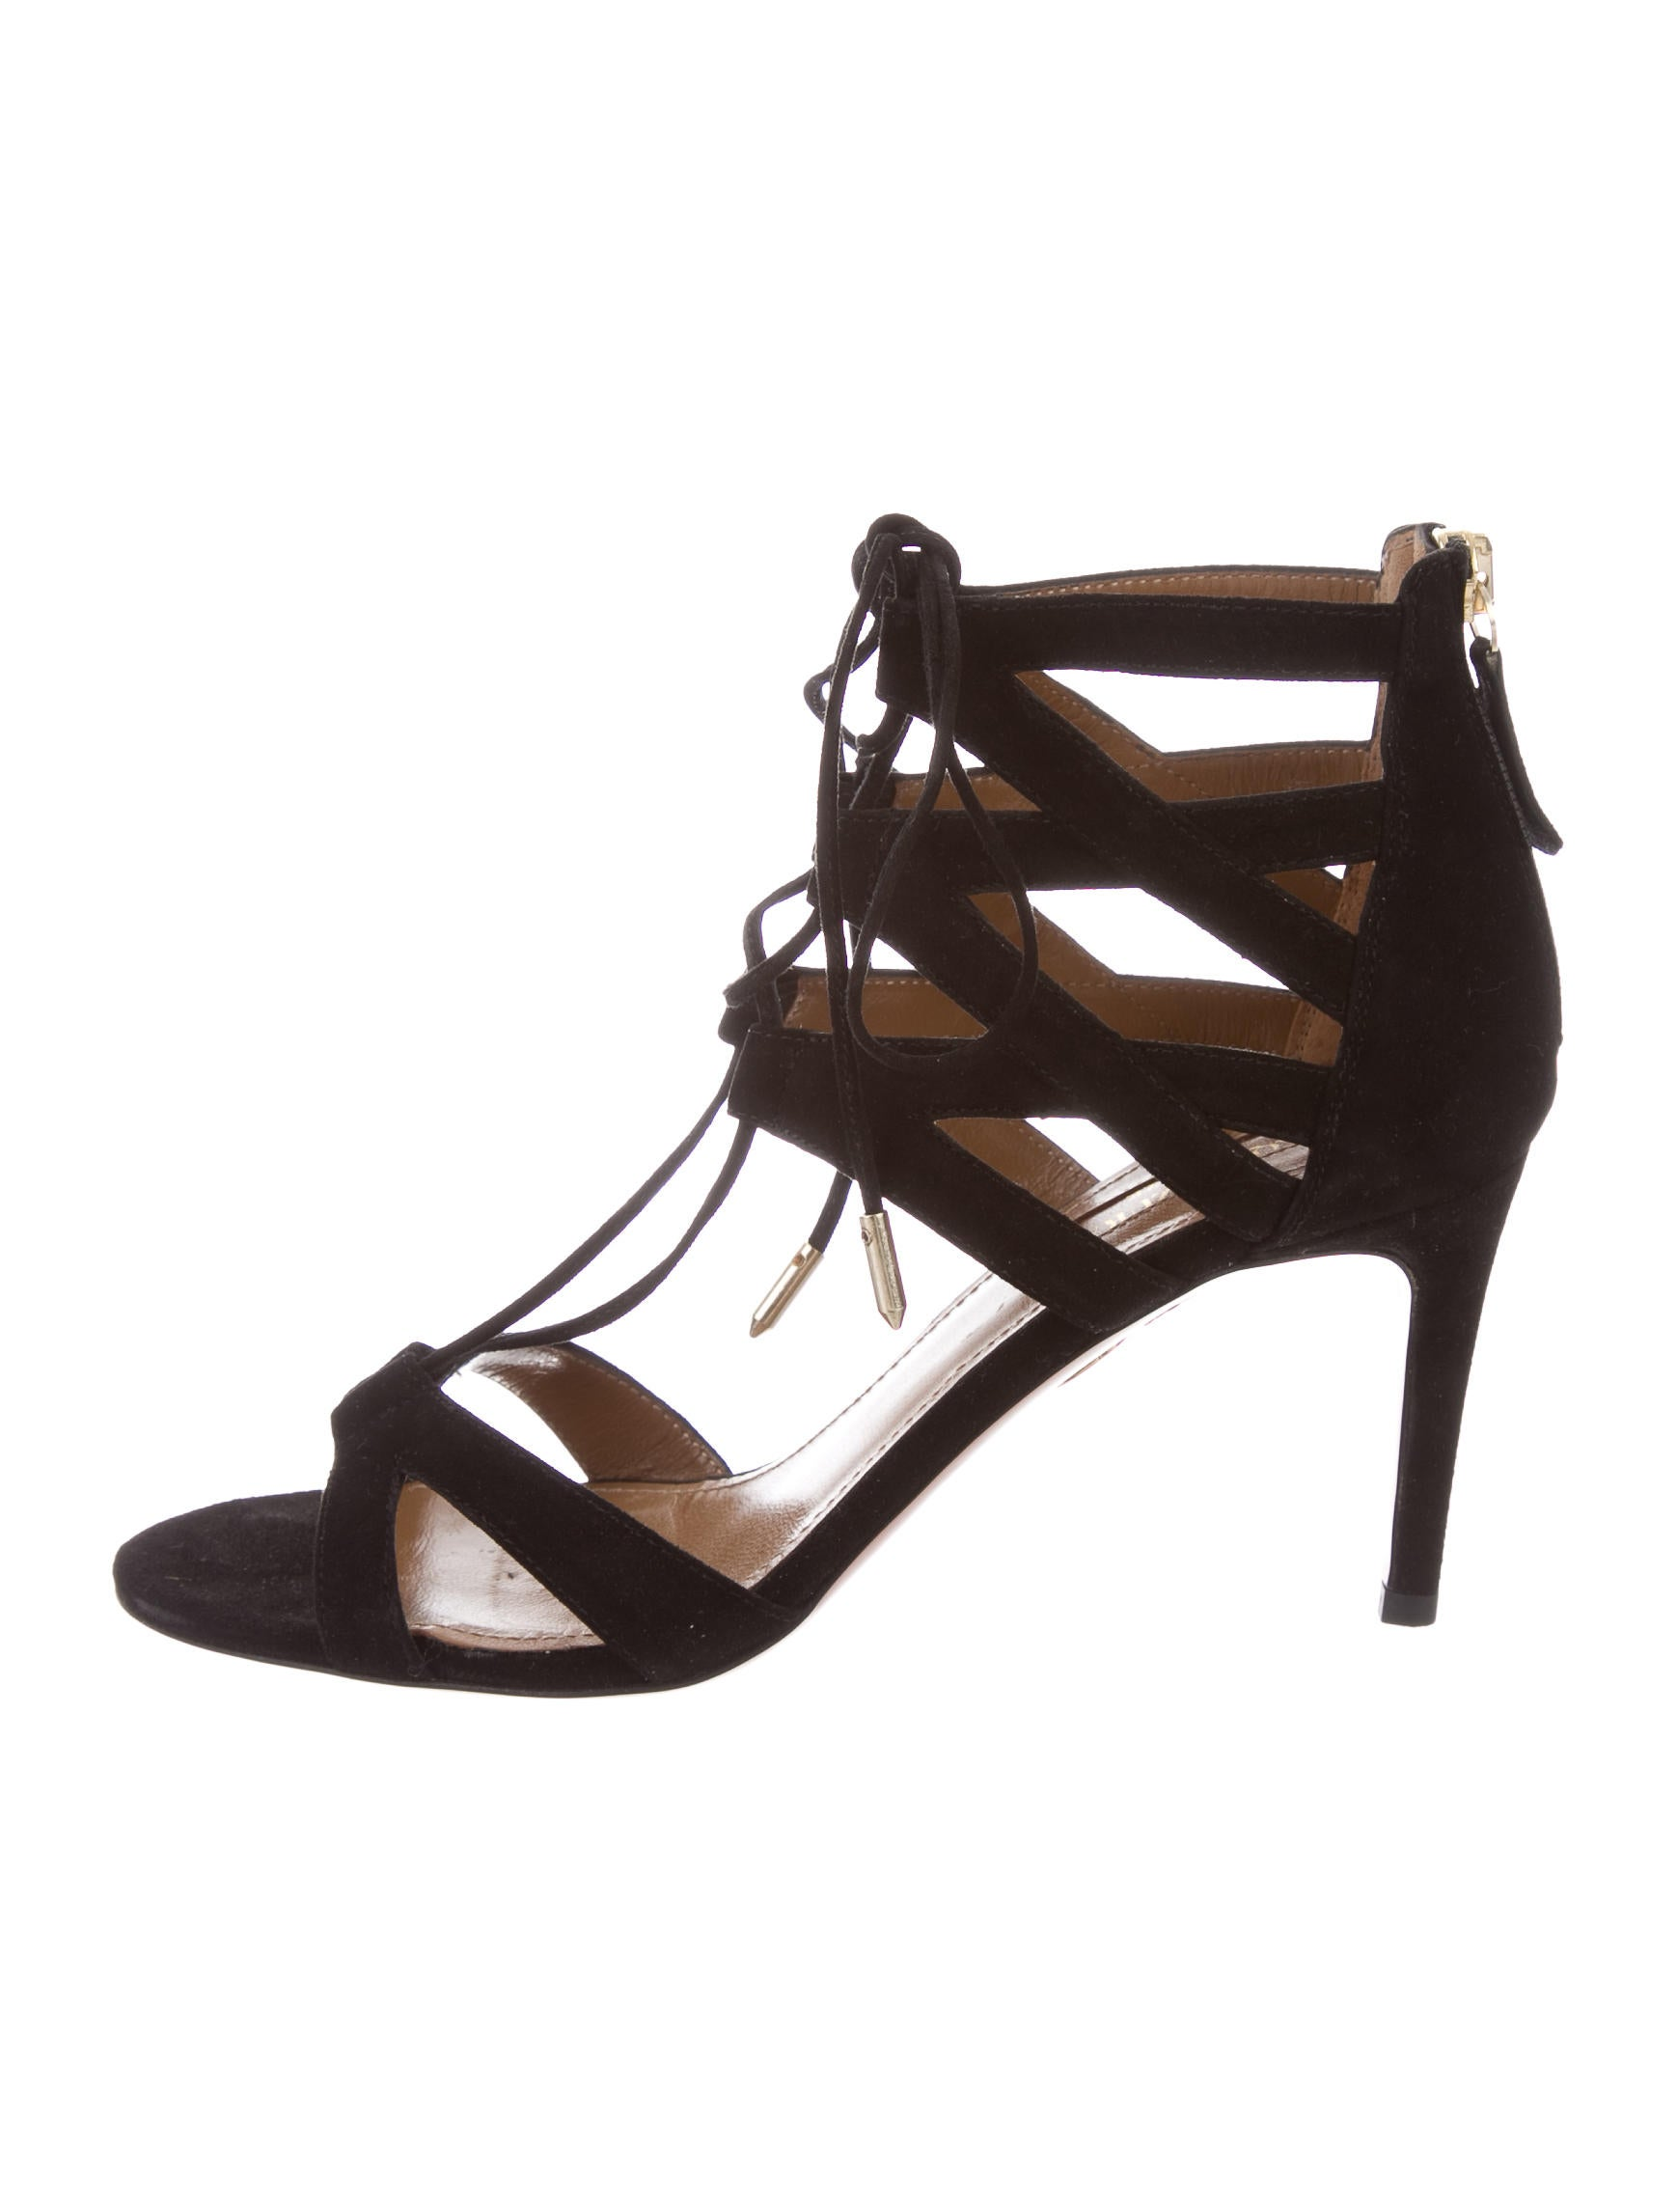 f7dc3dca8576 Aquazzura Beverly Hills 75 Sandals - Shoes - AQZ23372